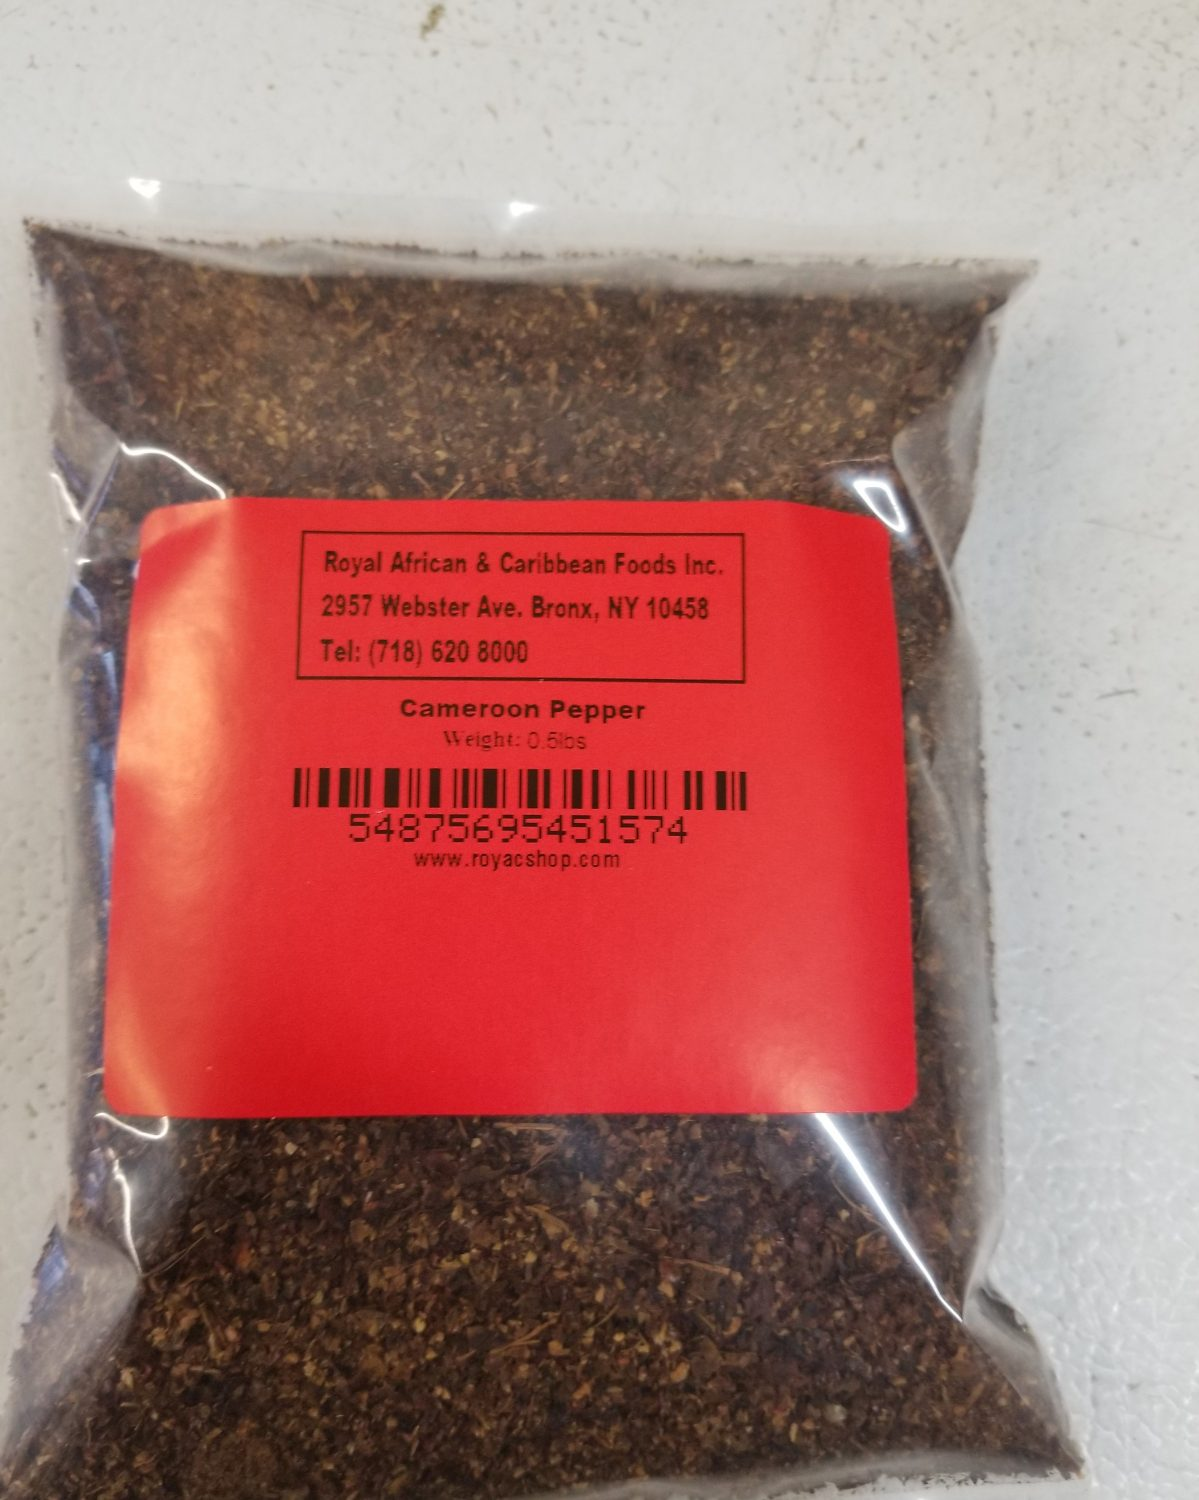 Cameroon pepper - Royacshop.com